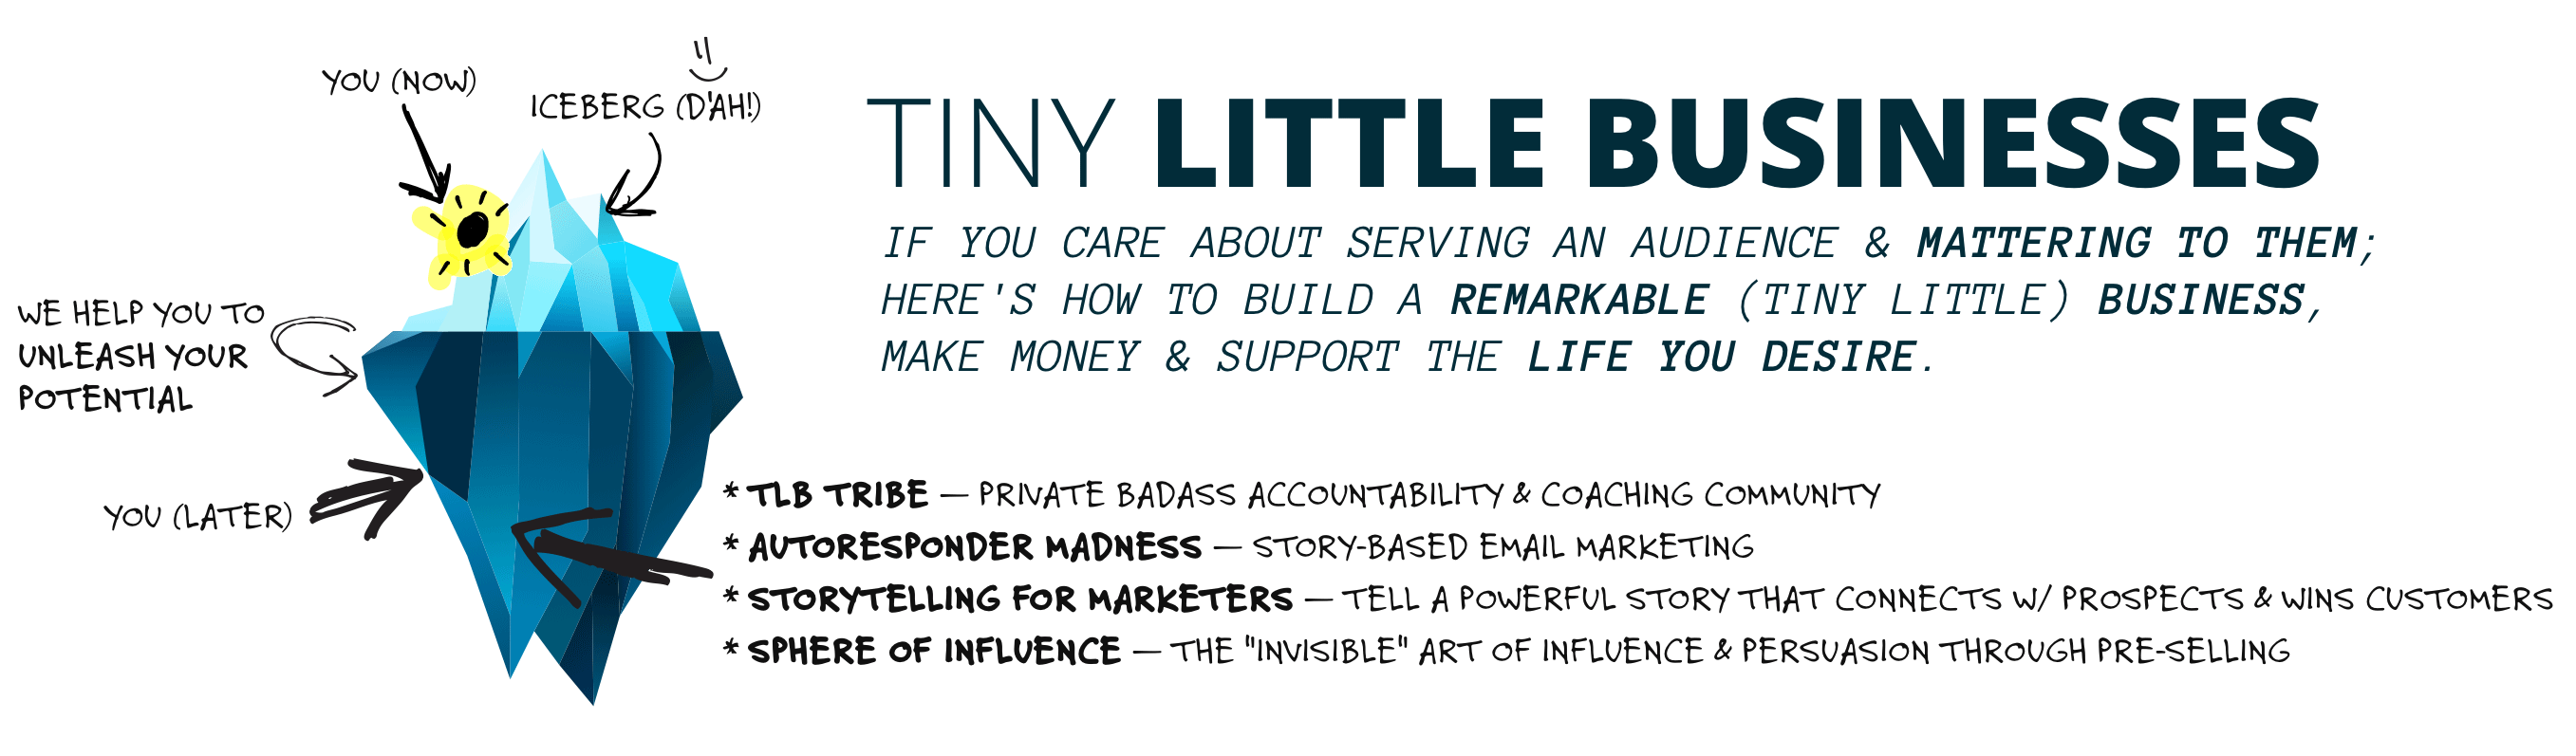 Tiny Little Businesses (TLB) | by Andre & Anita Chaperon